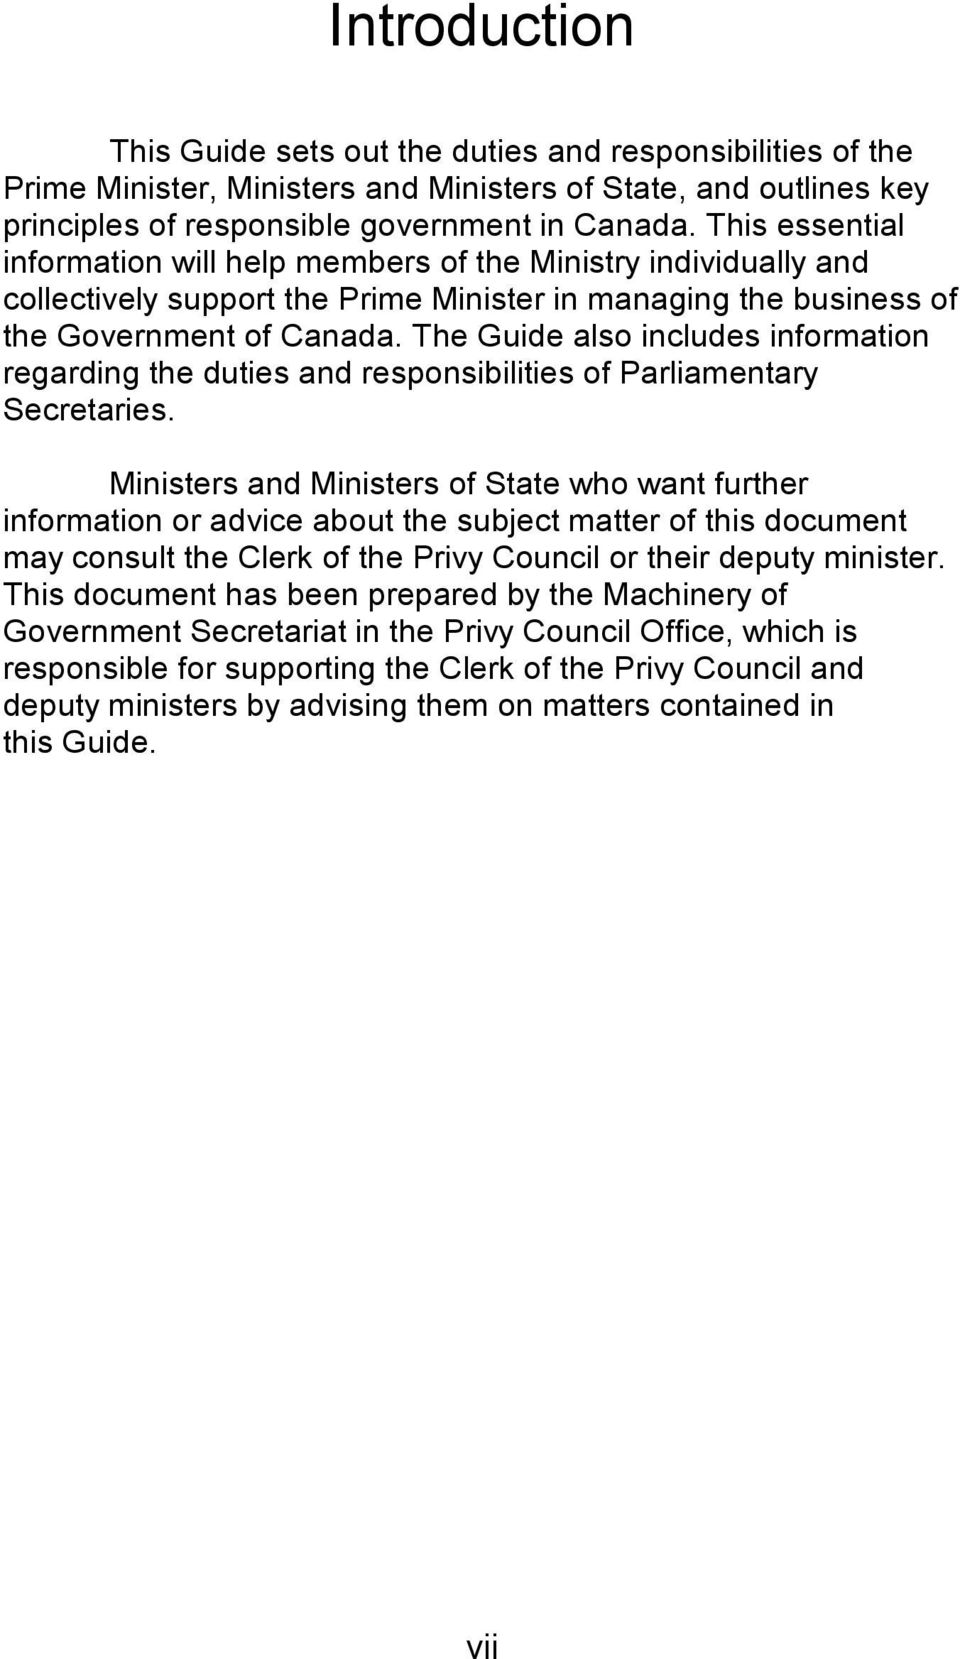 The Guide also includes information regarding the duties and responsibilities of Parliamentary Secretaries.